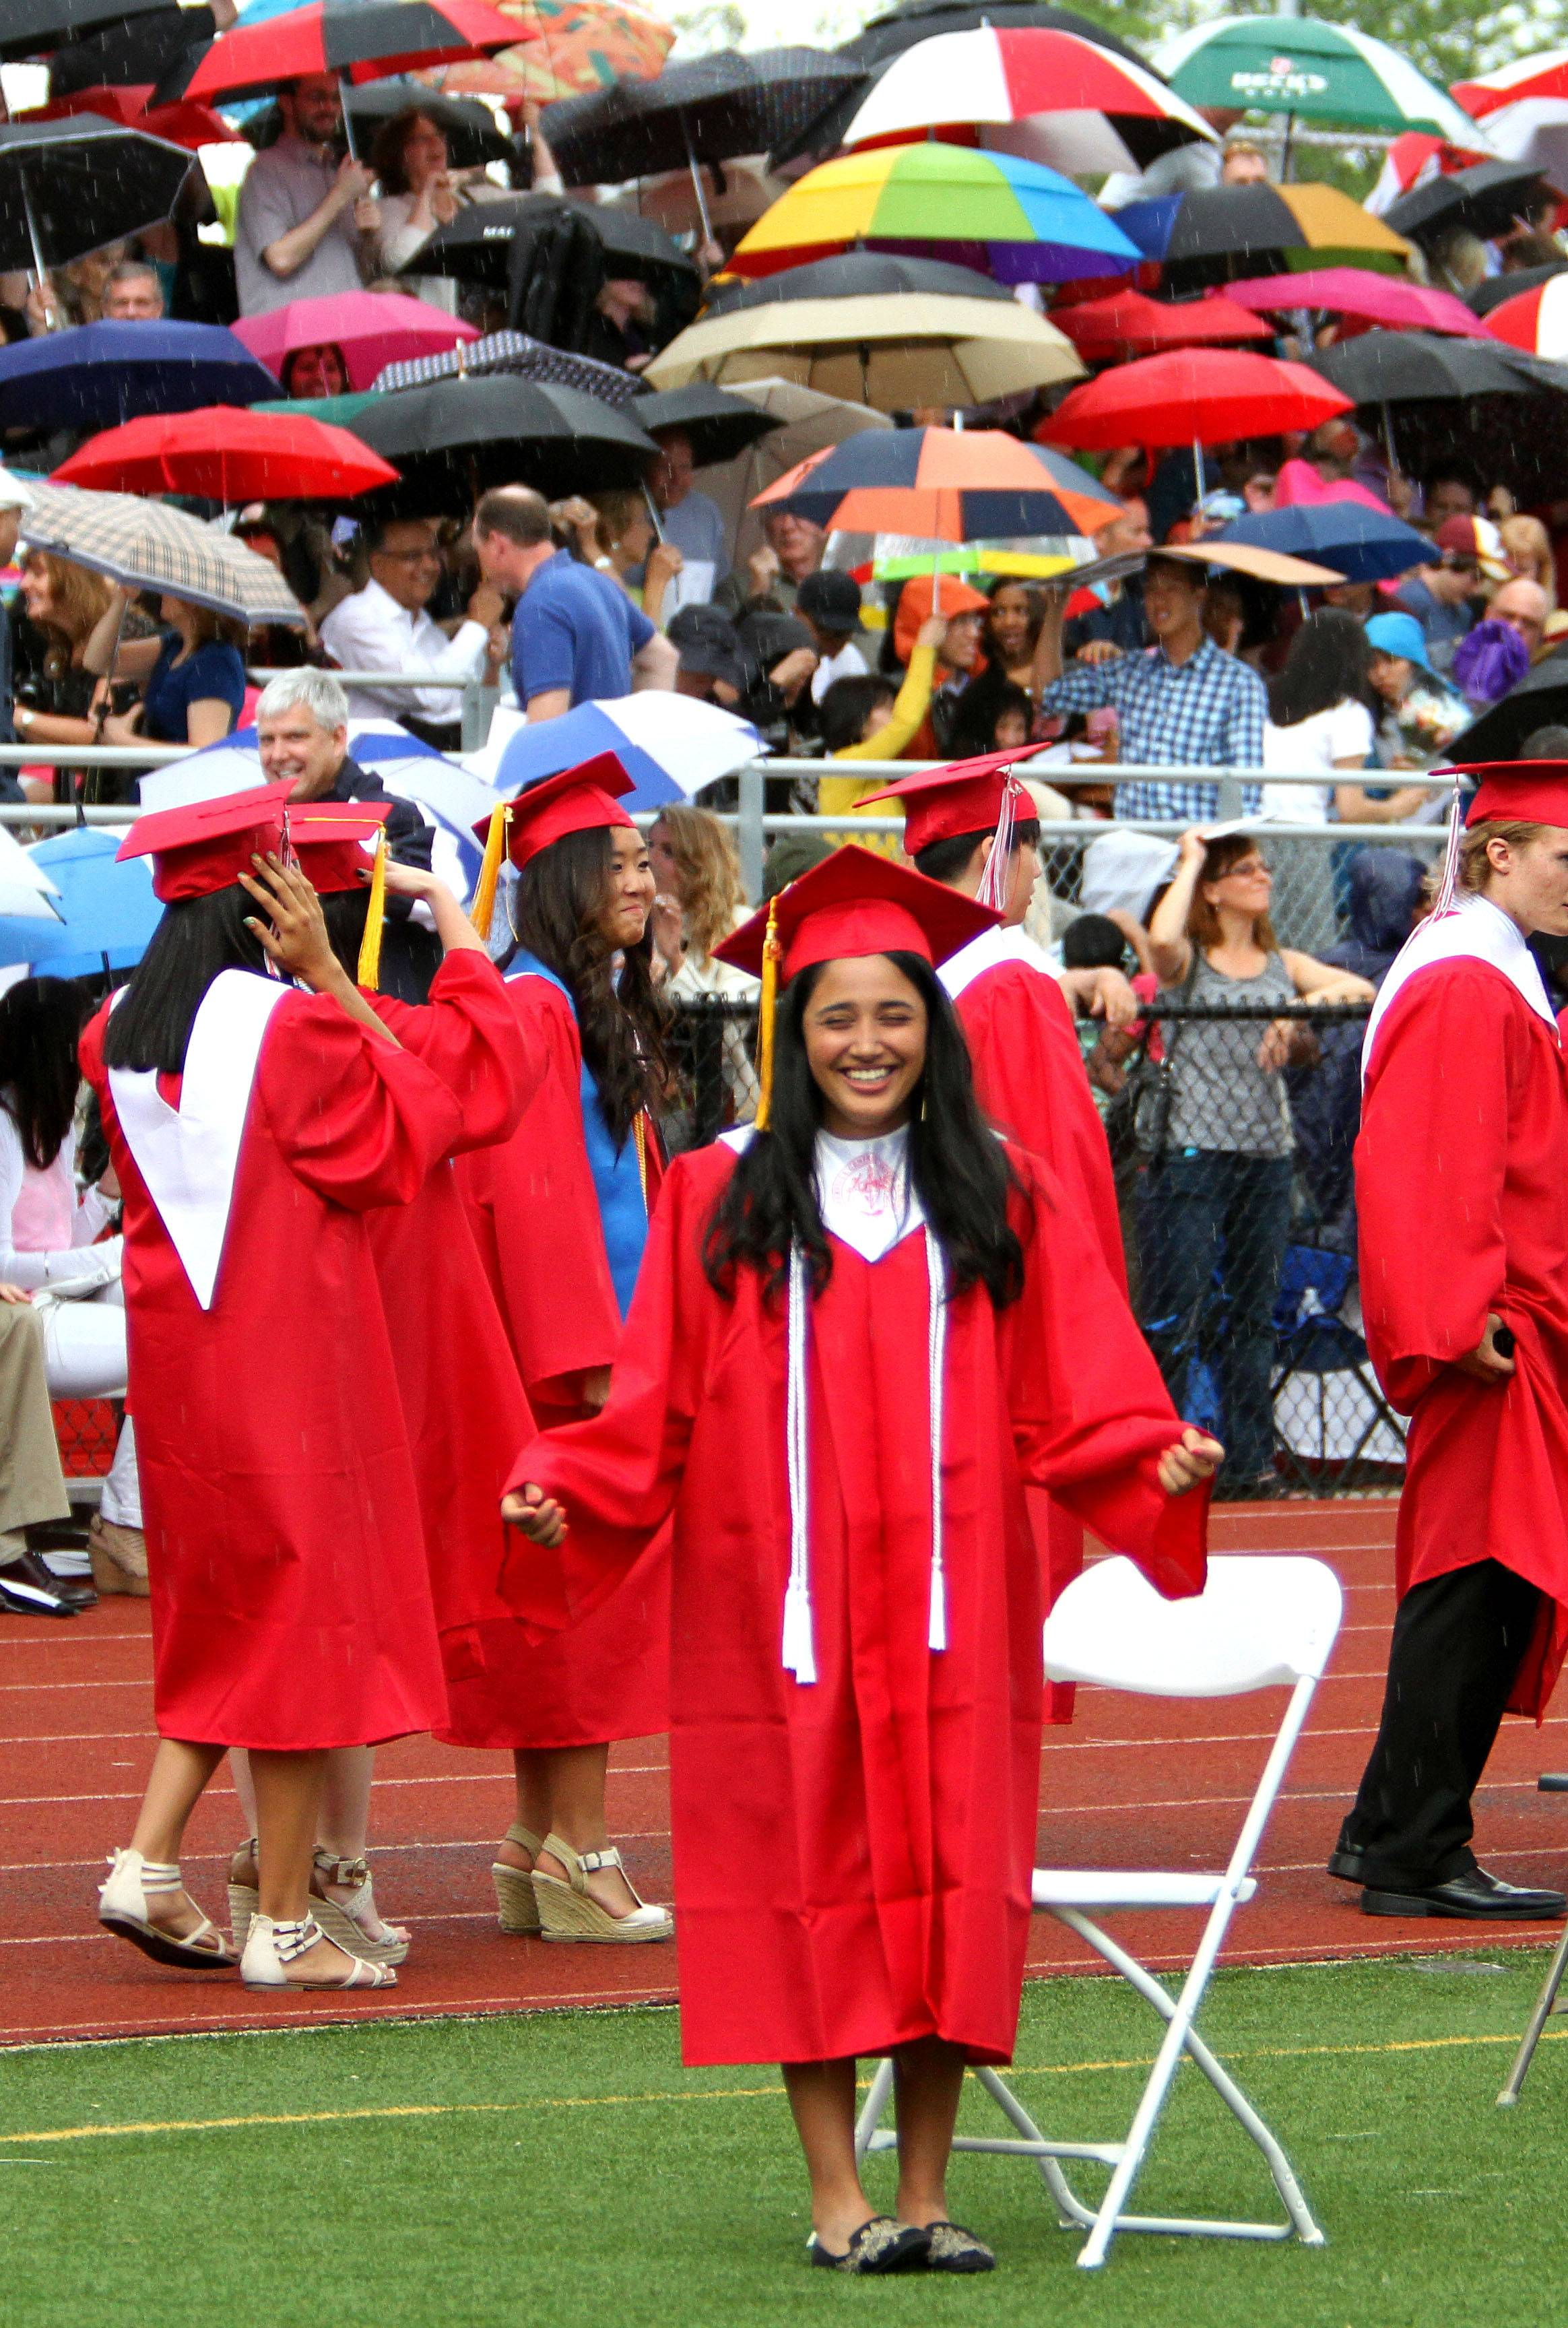 Akshada Apte reacts as it starts to rain at the start of the Naperville Central High School graduation ceremony on Tuesday, May 27, soon after lightning was seen and the cermony had to be postponed until Wednesday, May 28  at 6pm.